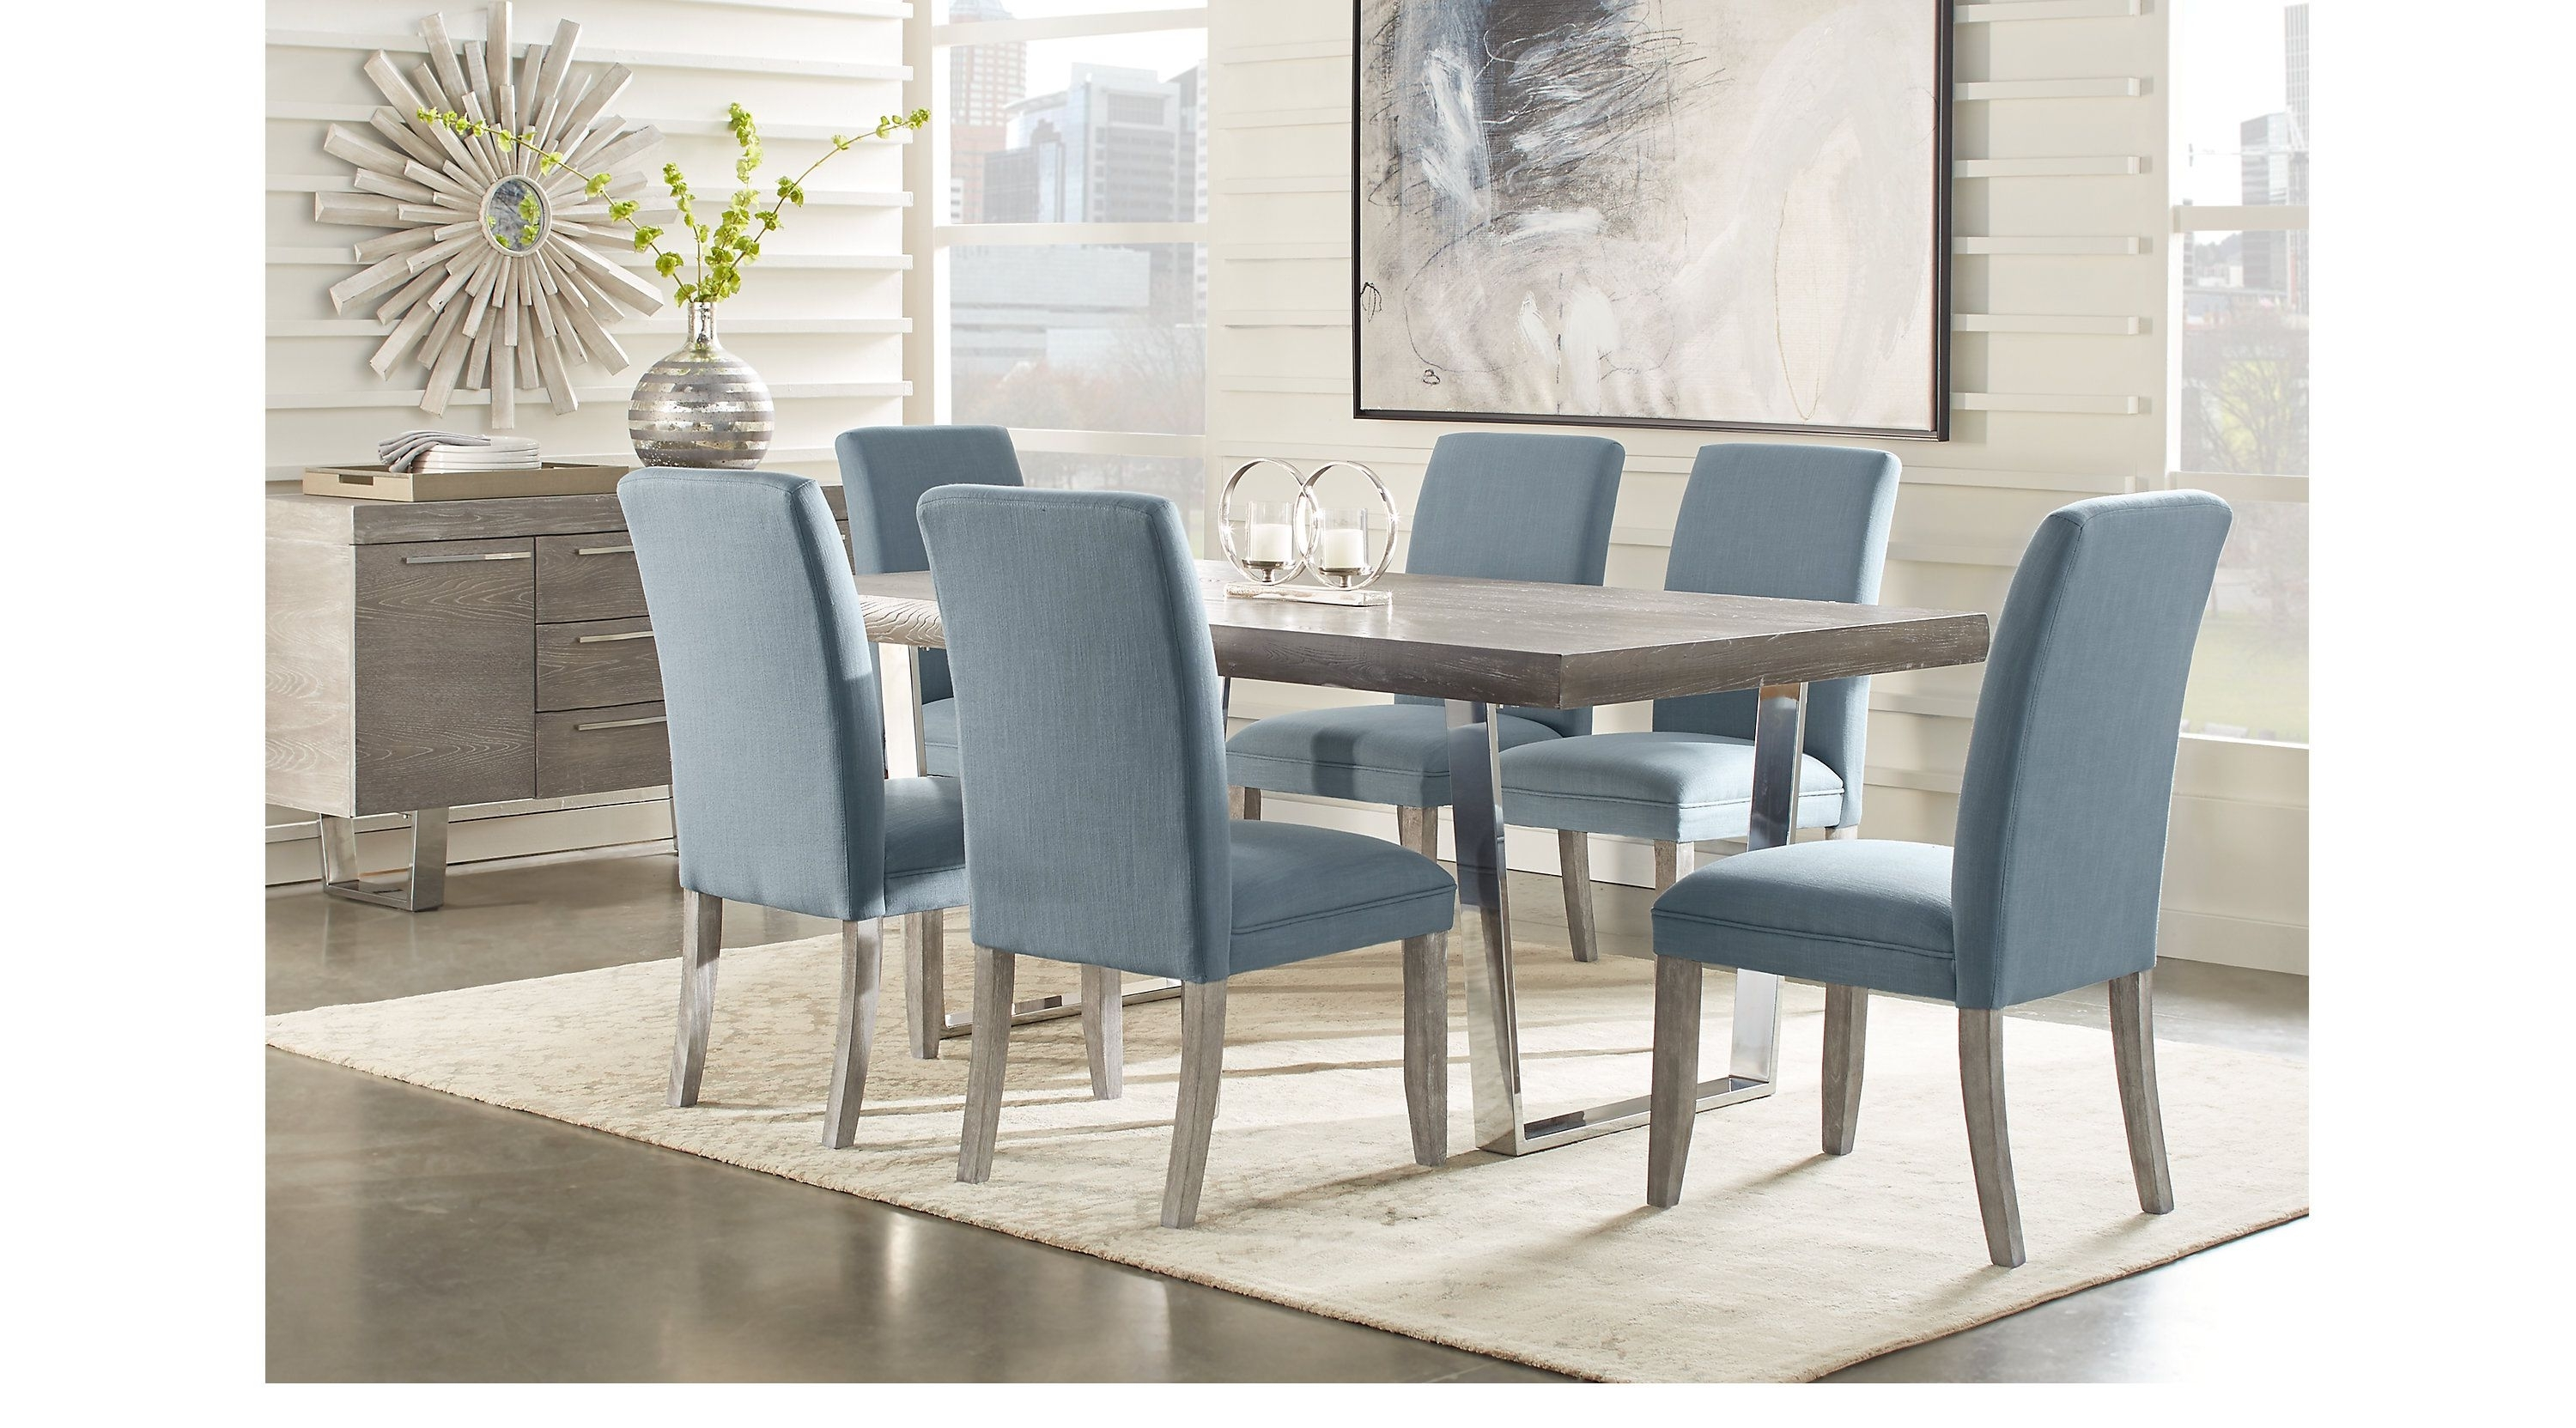 Cindy Crawford Home San Francisco Gray 5 Pc Dining Room (View 8 of 25)